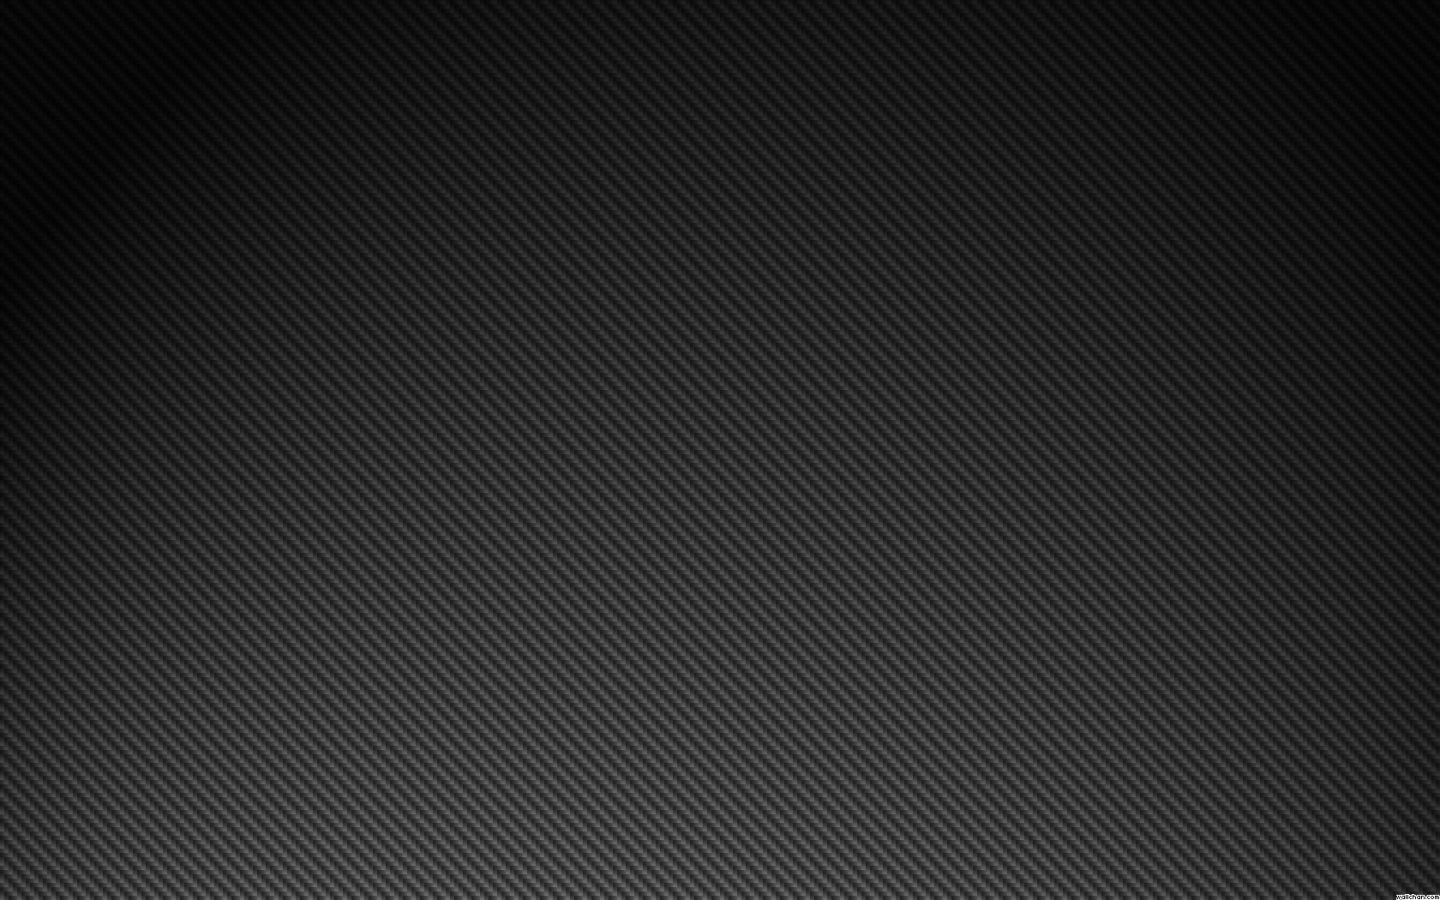 19919 black and white pattern wallpapers black and white pattern 1440x900